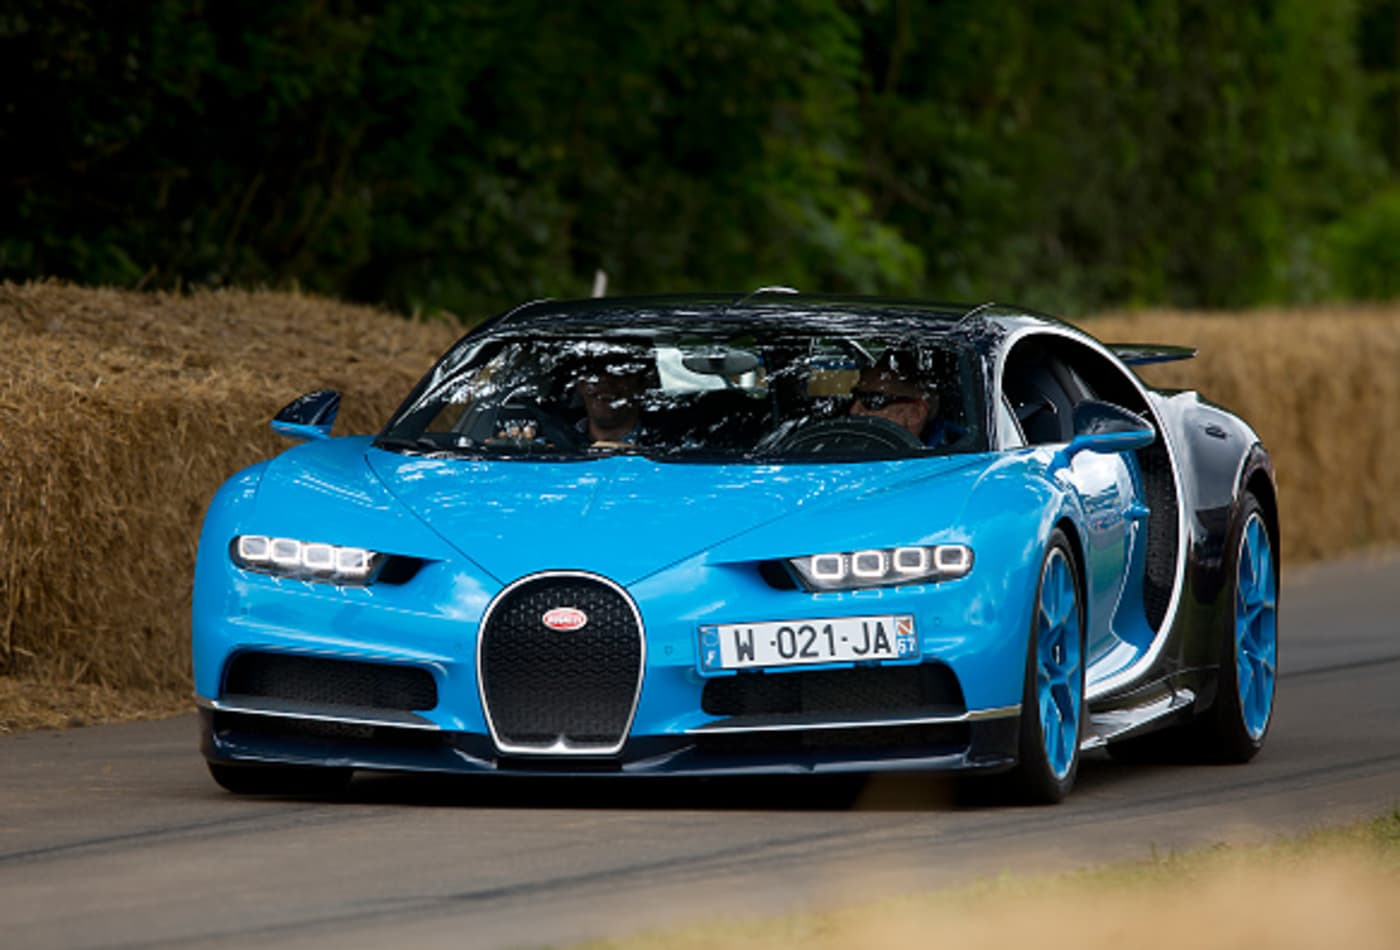 Fastest Car In The World >> Photos Fastest Production Cars In The World Can Cost Millions